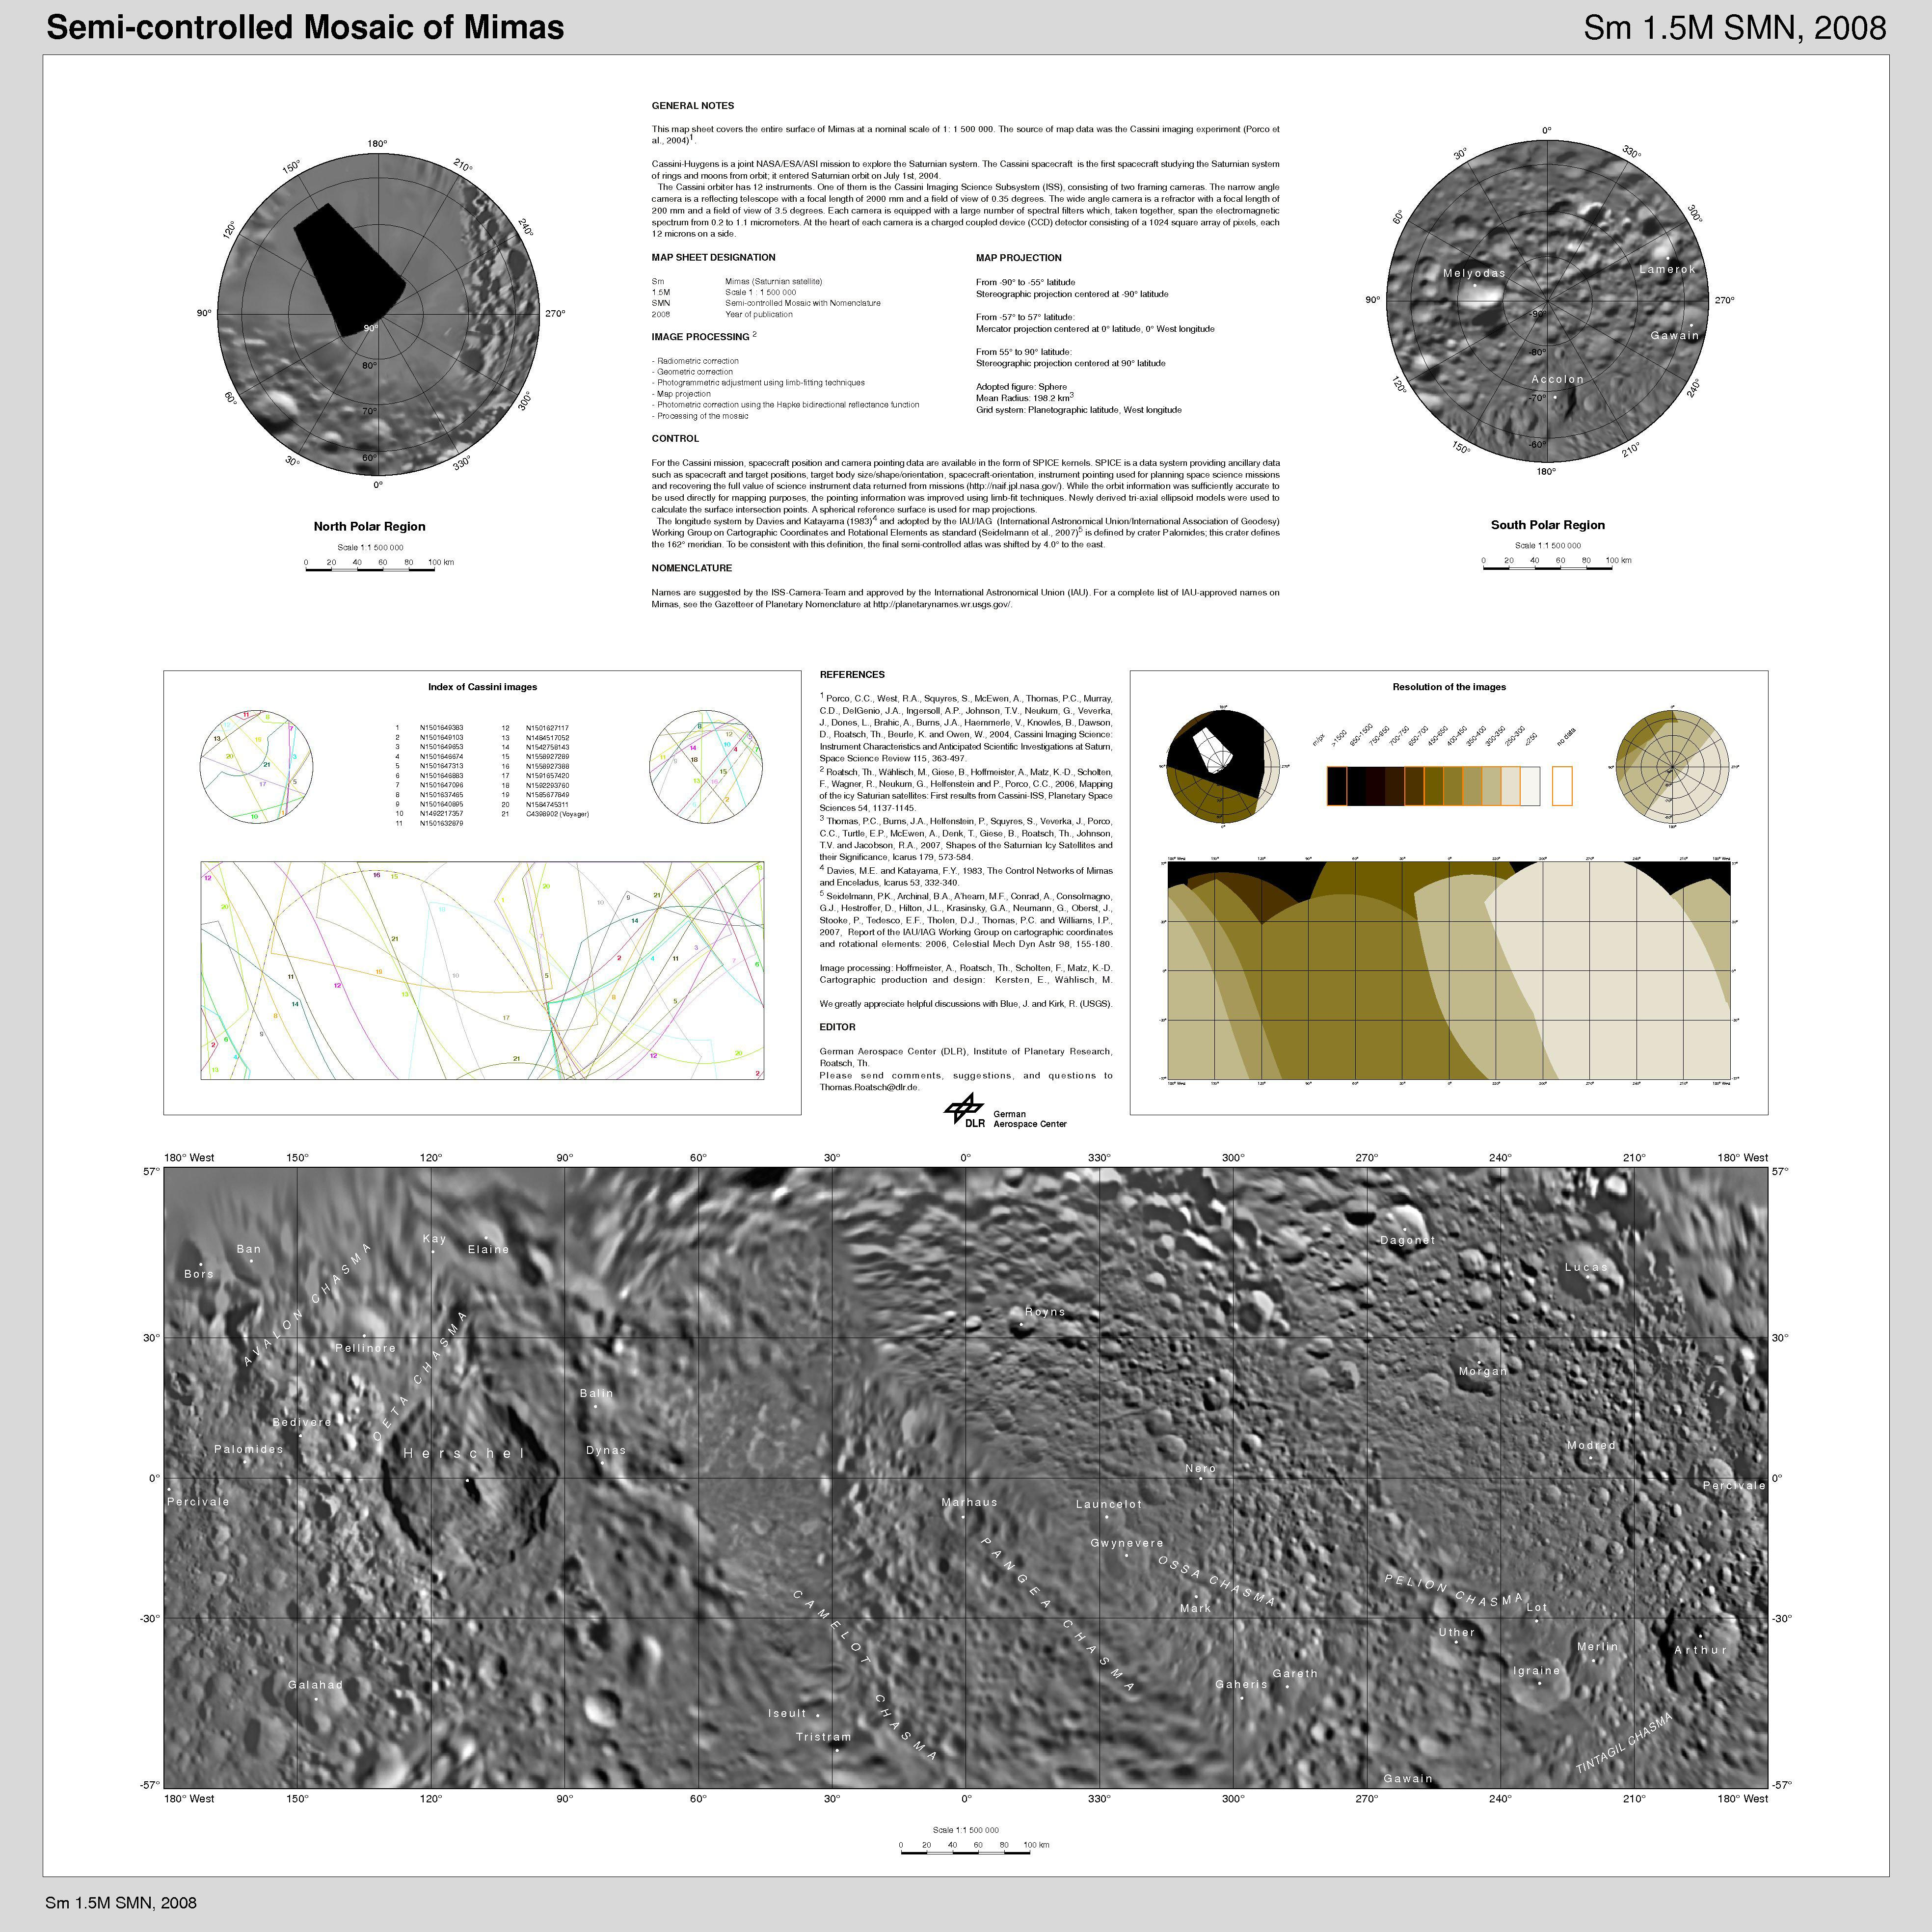 cartographic map sheet which forms a high-resolution Mimas atlas